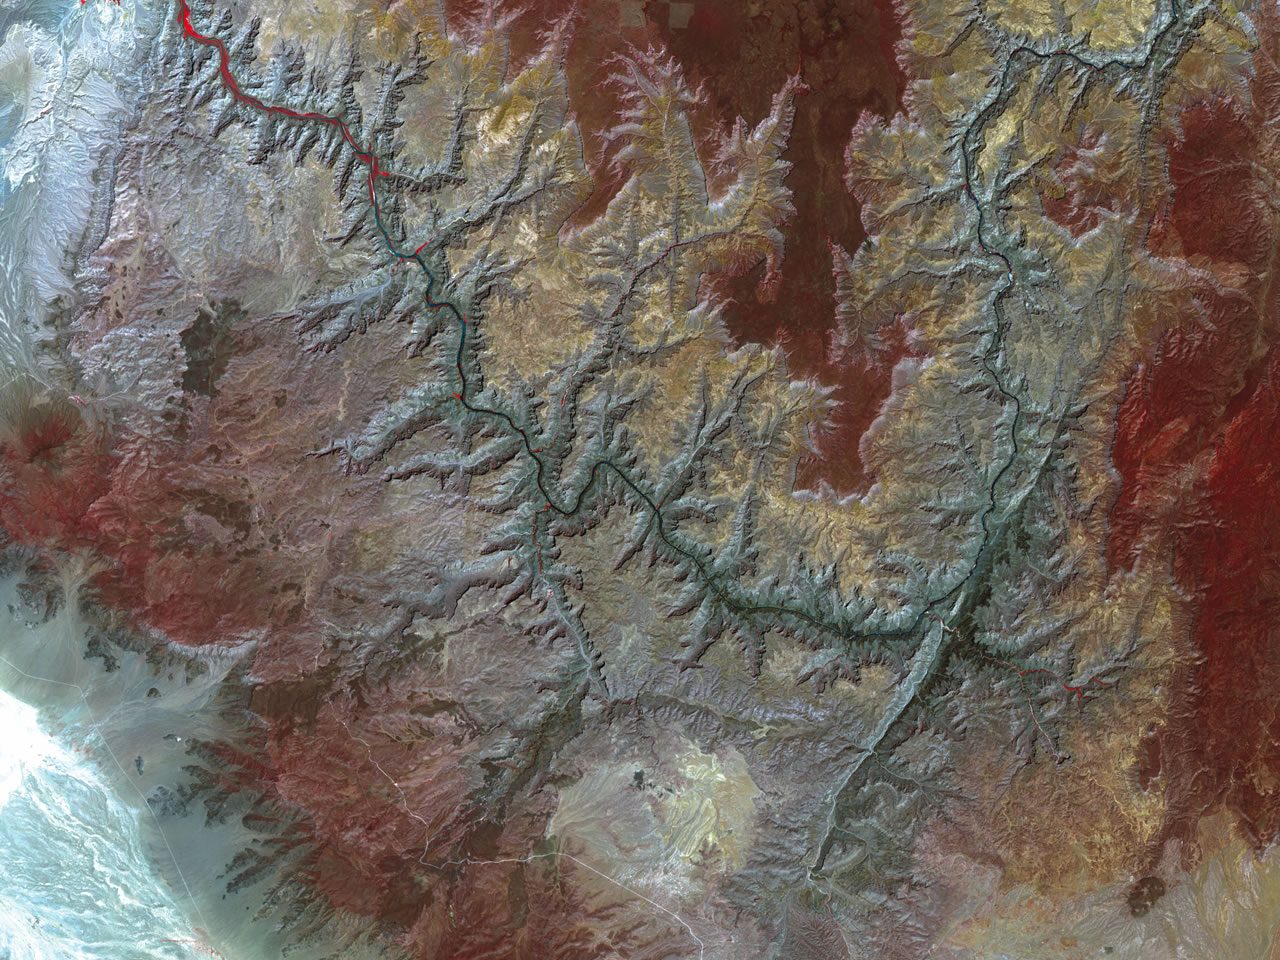 Grand Canyon Image Of The Day